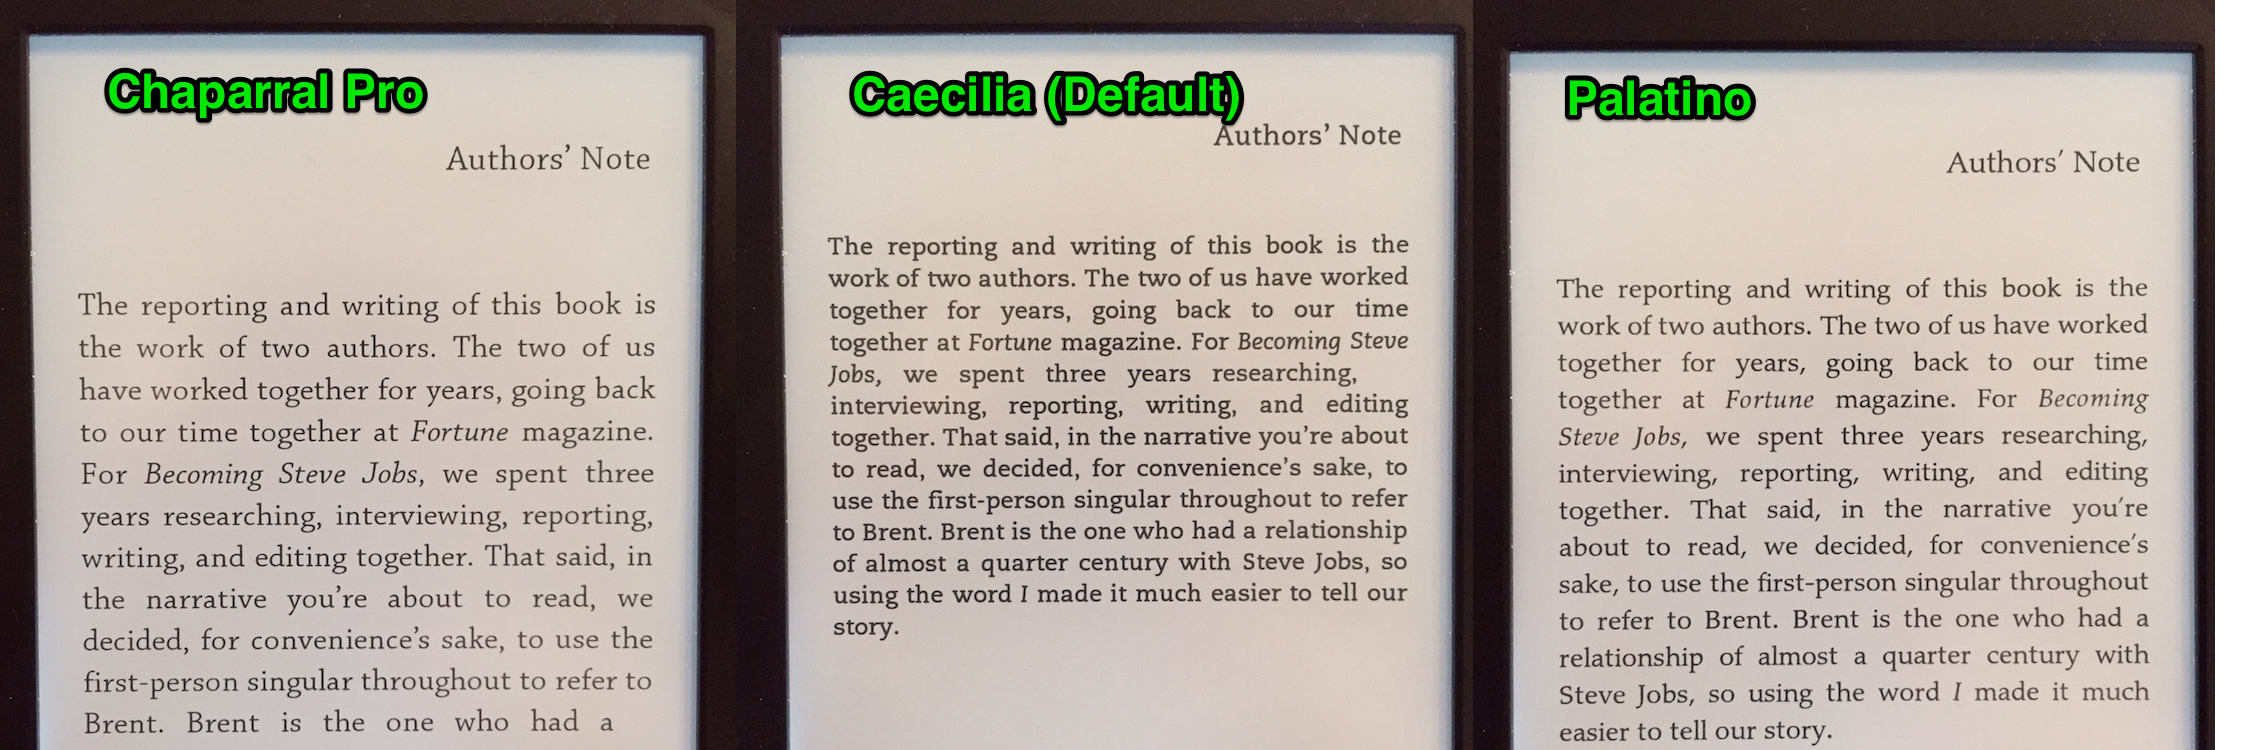 kindle_font_comparison